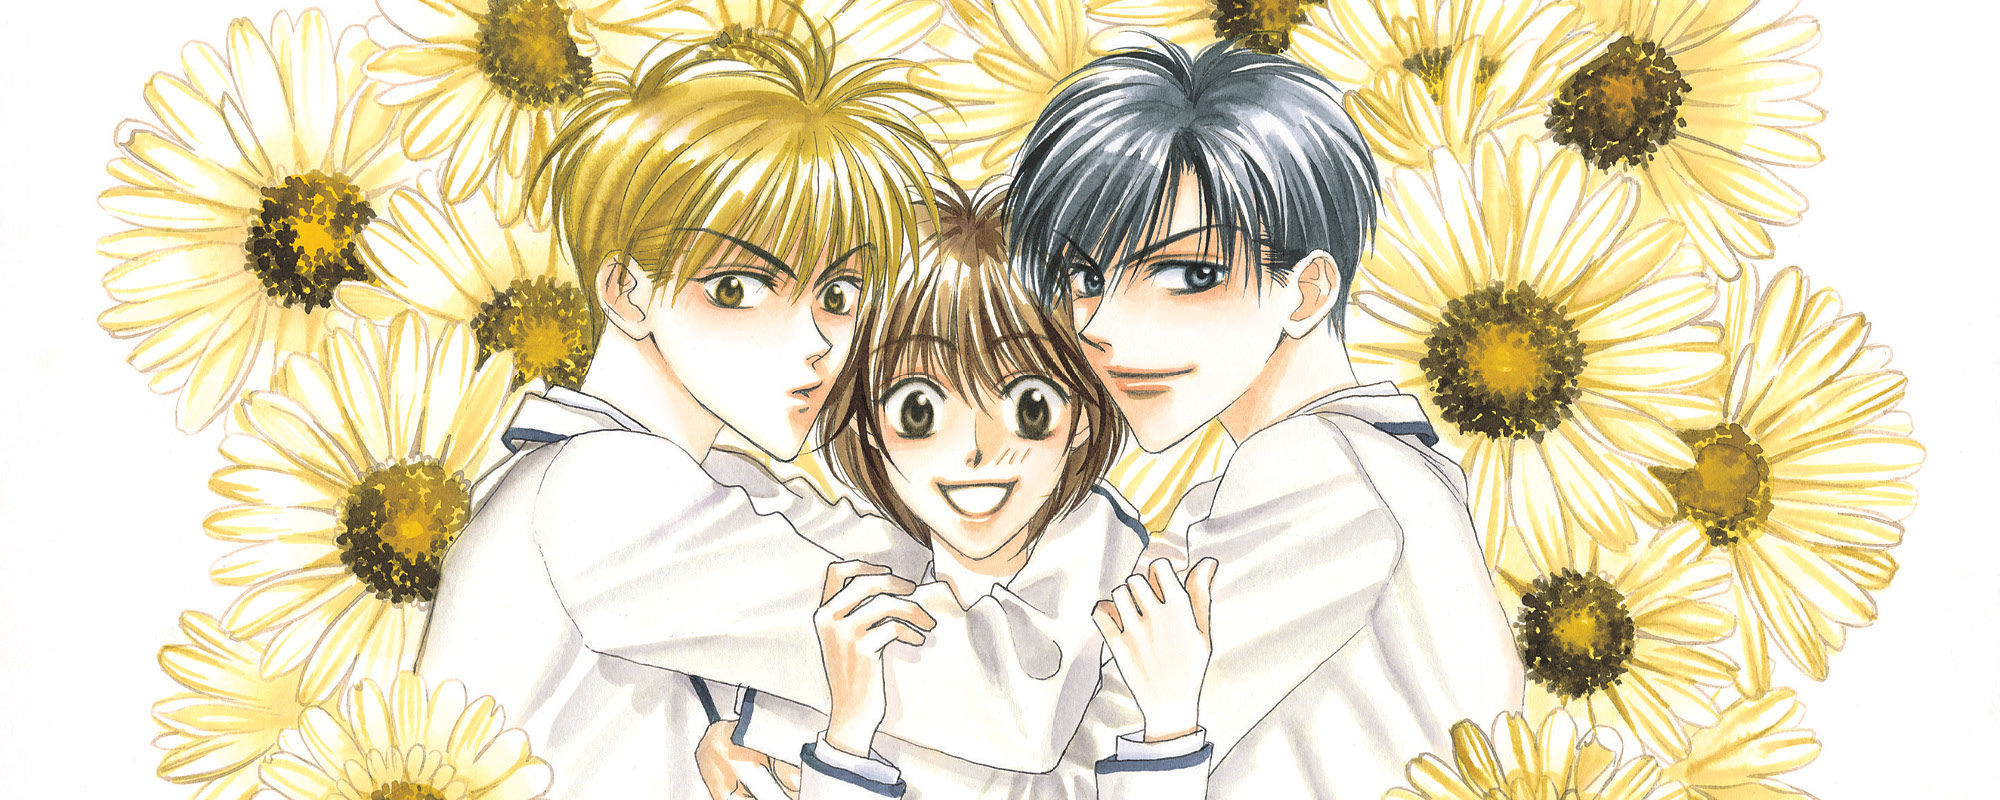 Two boys hugging a boyish girl against a background of sunflowers